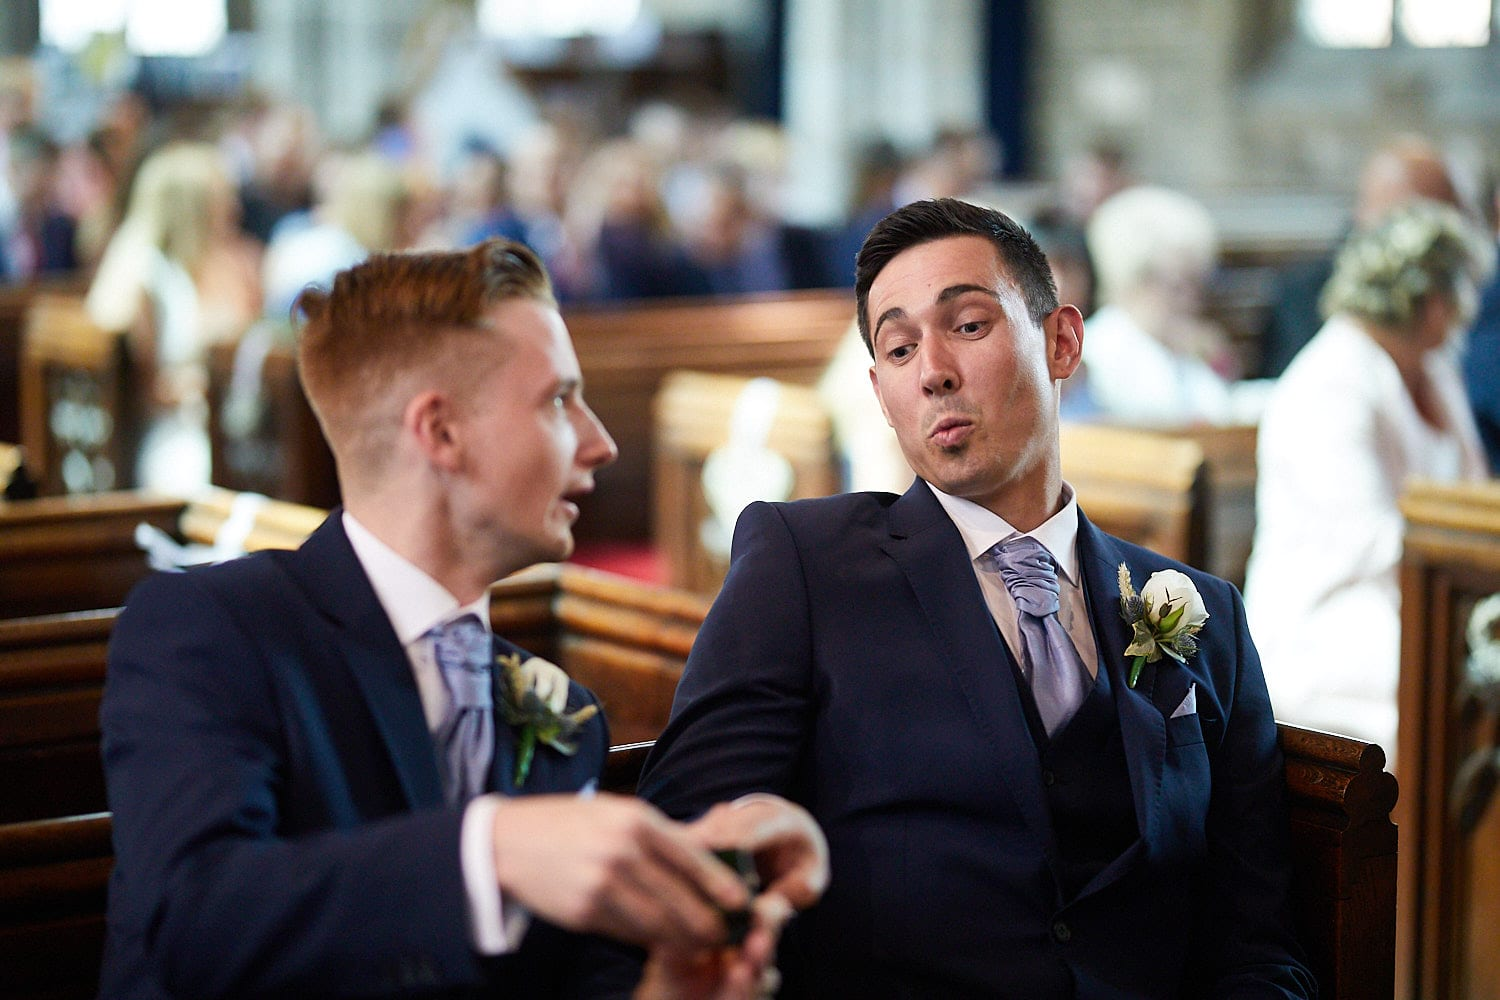 A groom and his best man share a joke about the rings whilst waiting in church.